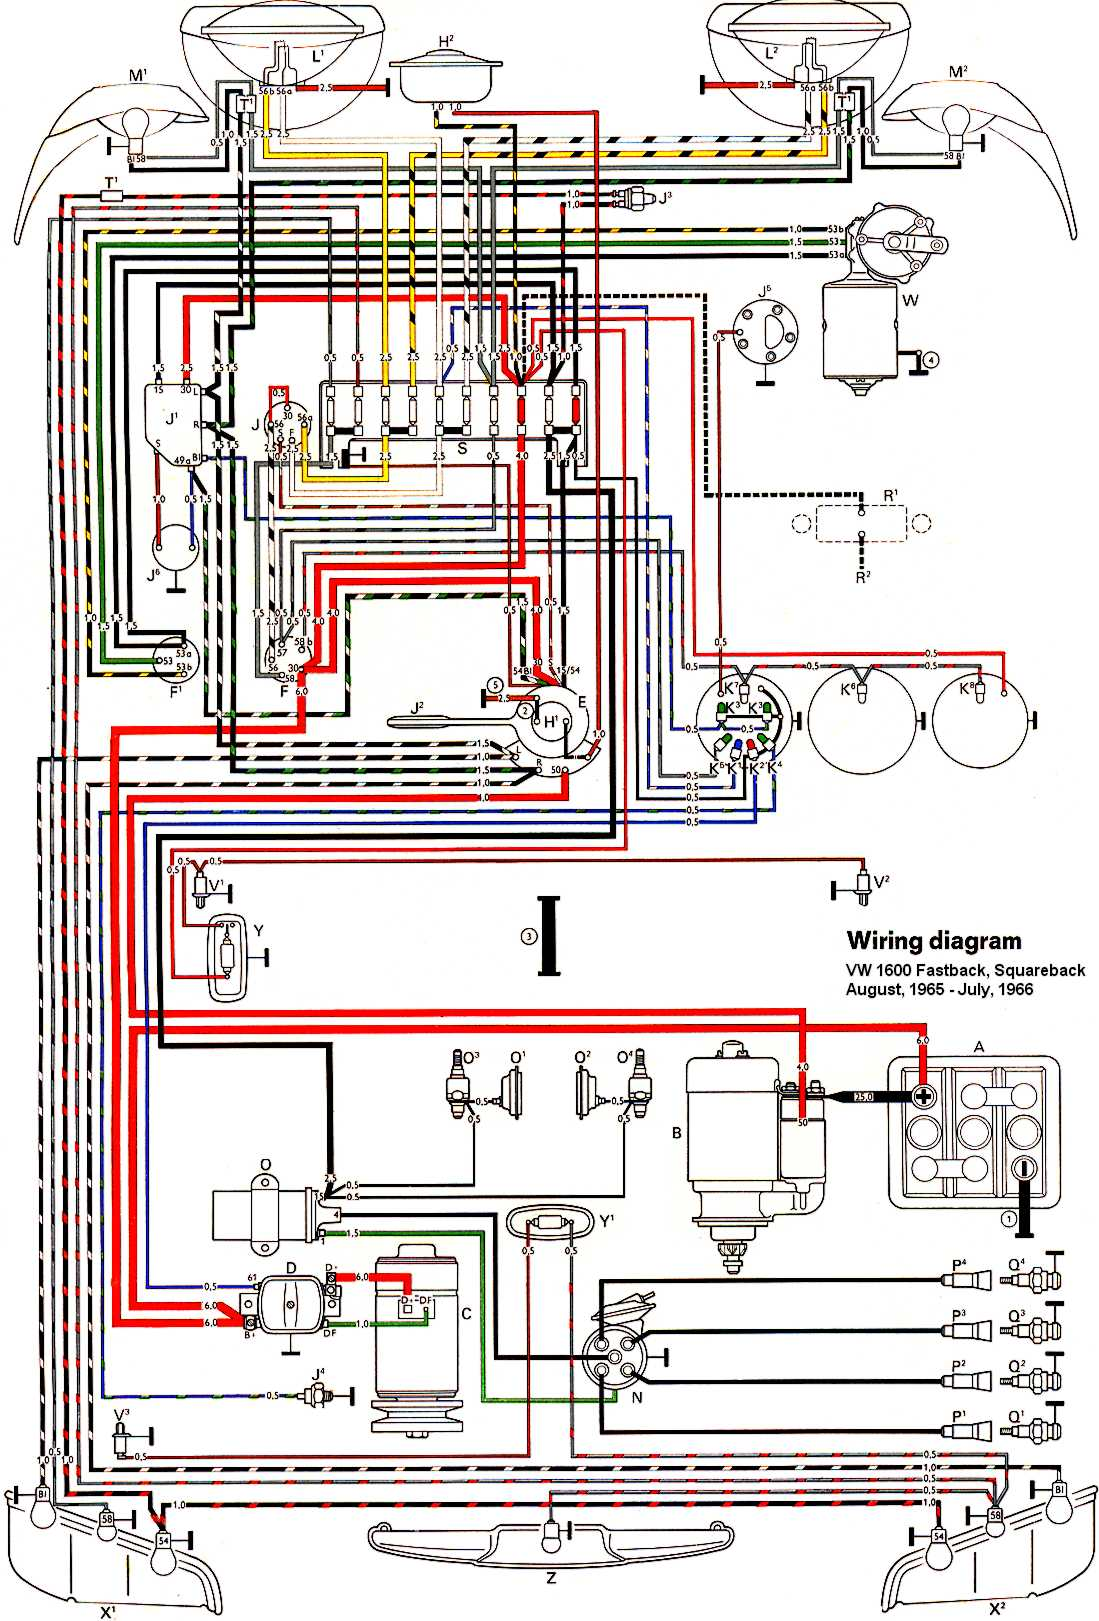 volkswagen t3 wiring diagram volkswagen wiring diagrams online 1000 images about vw on vw t3 wiring diagram